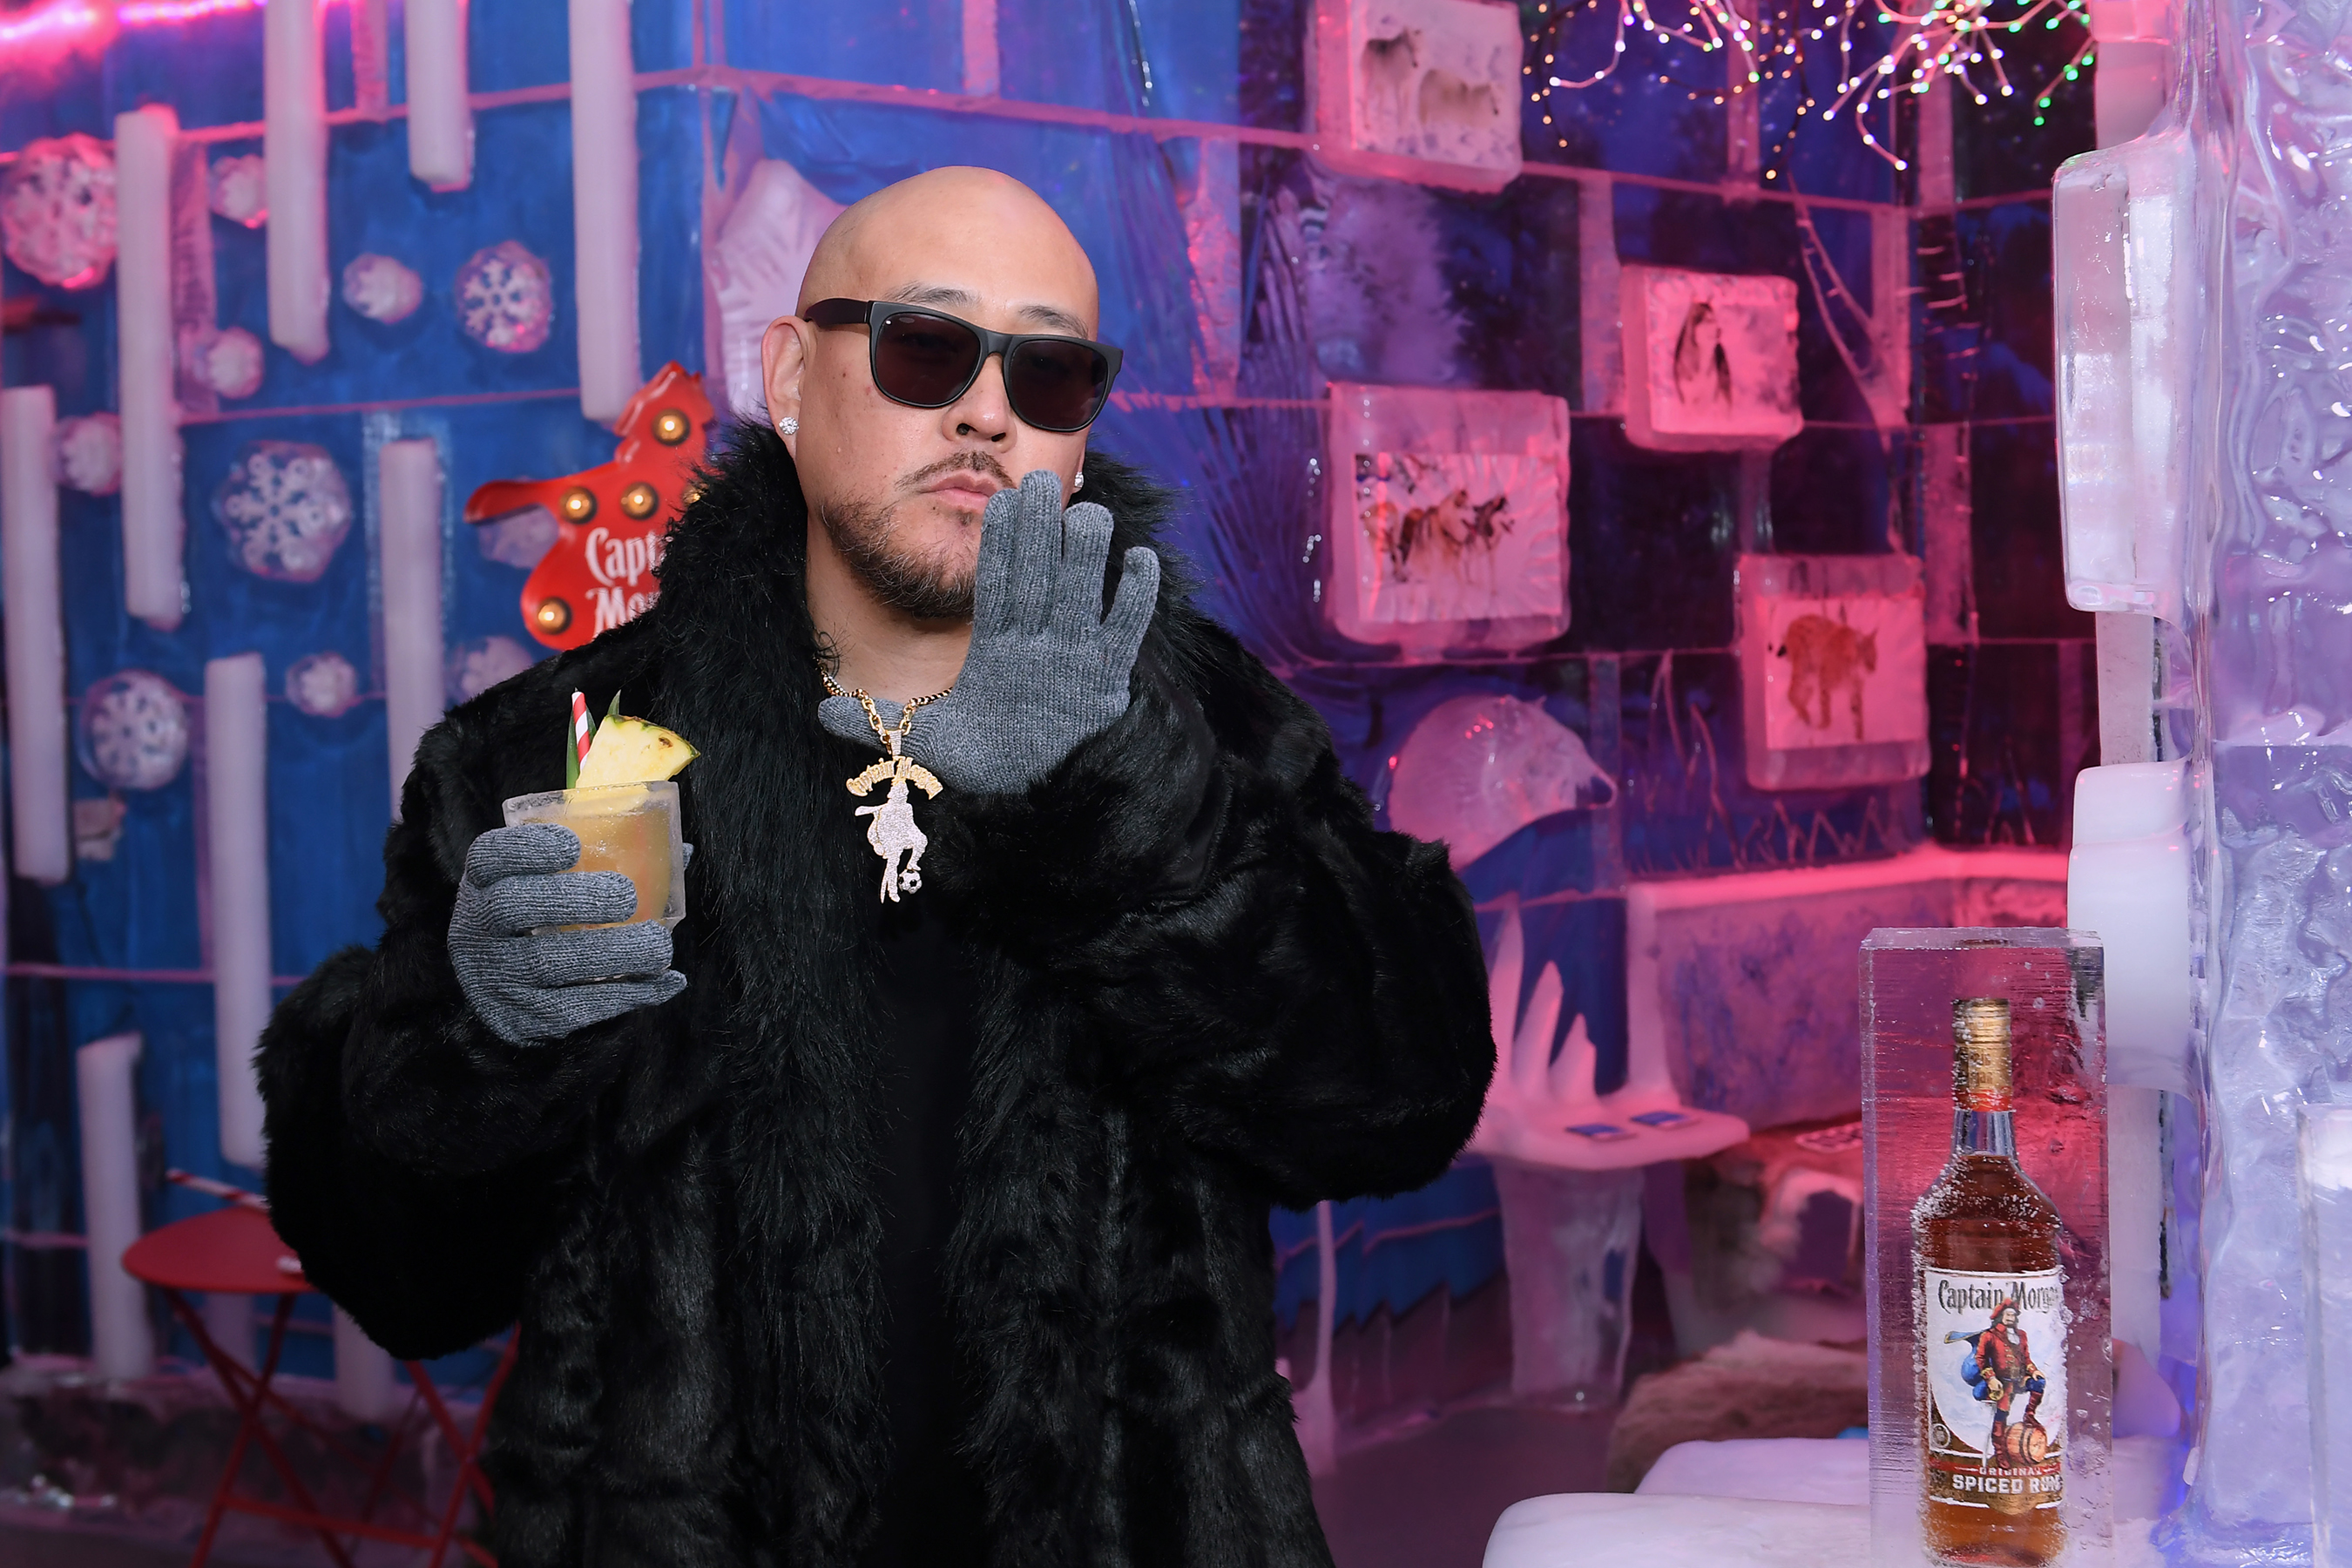 Captain Morgan celebrates partnership launch with iconic jeweler and entrepreneur, Ben Baller in Las Vegas, Nevada on Wednesday, August 11, 2021.